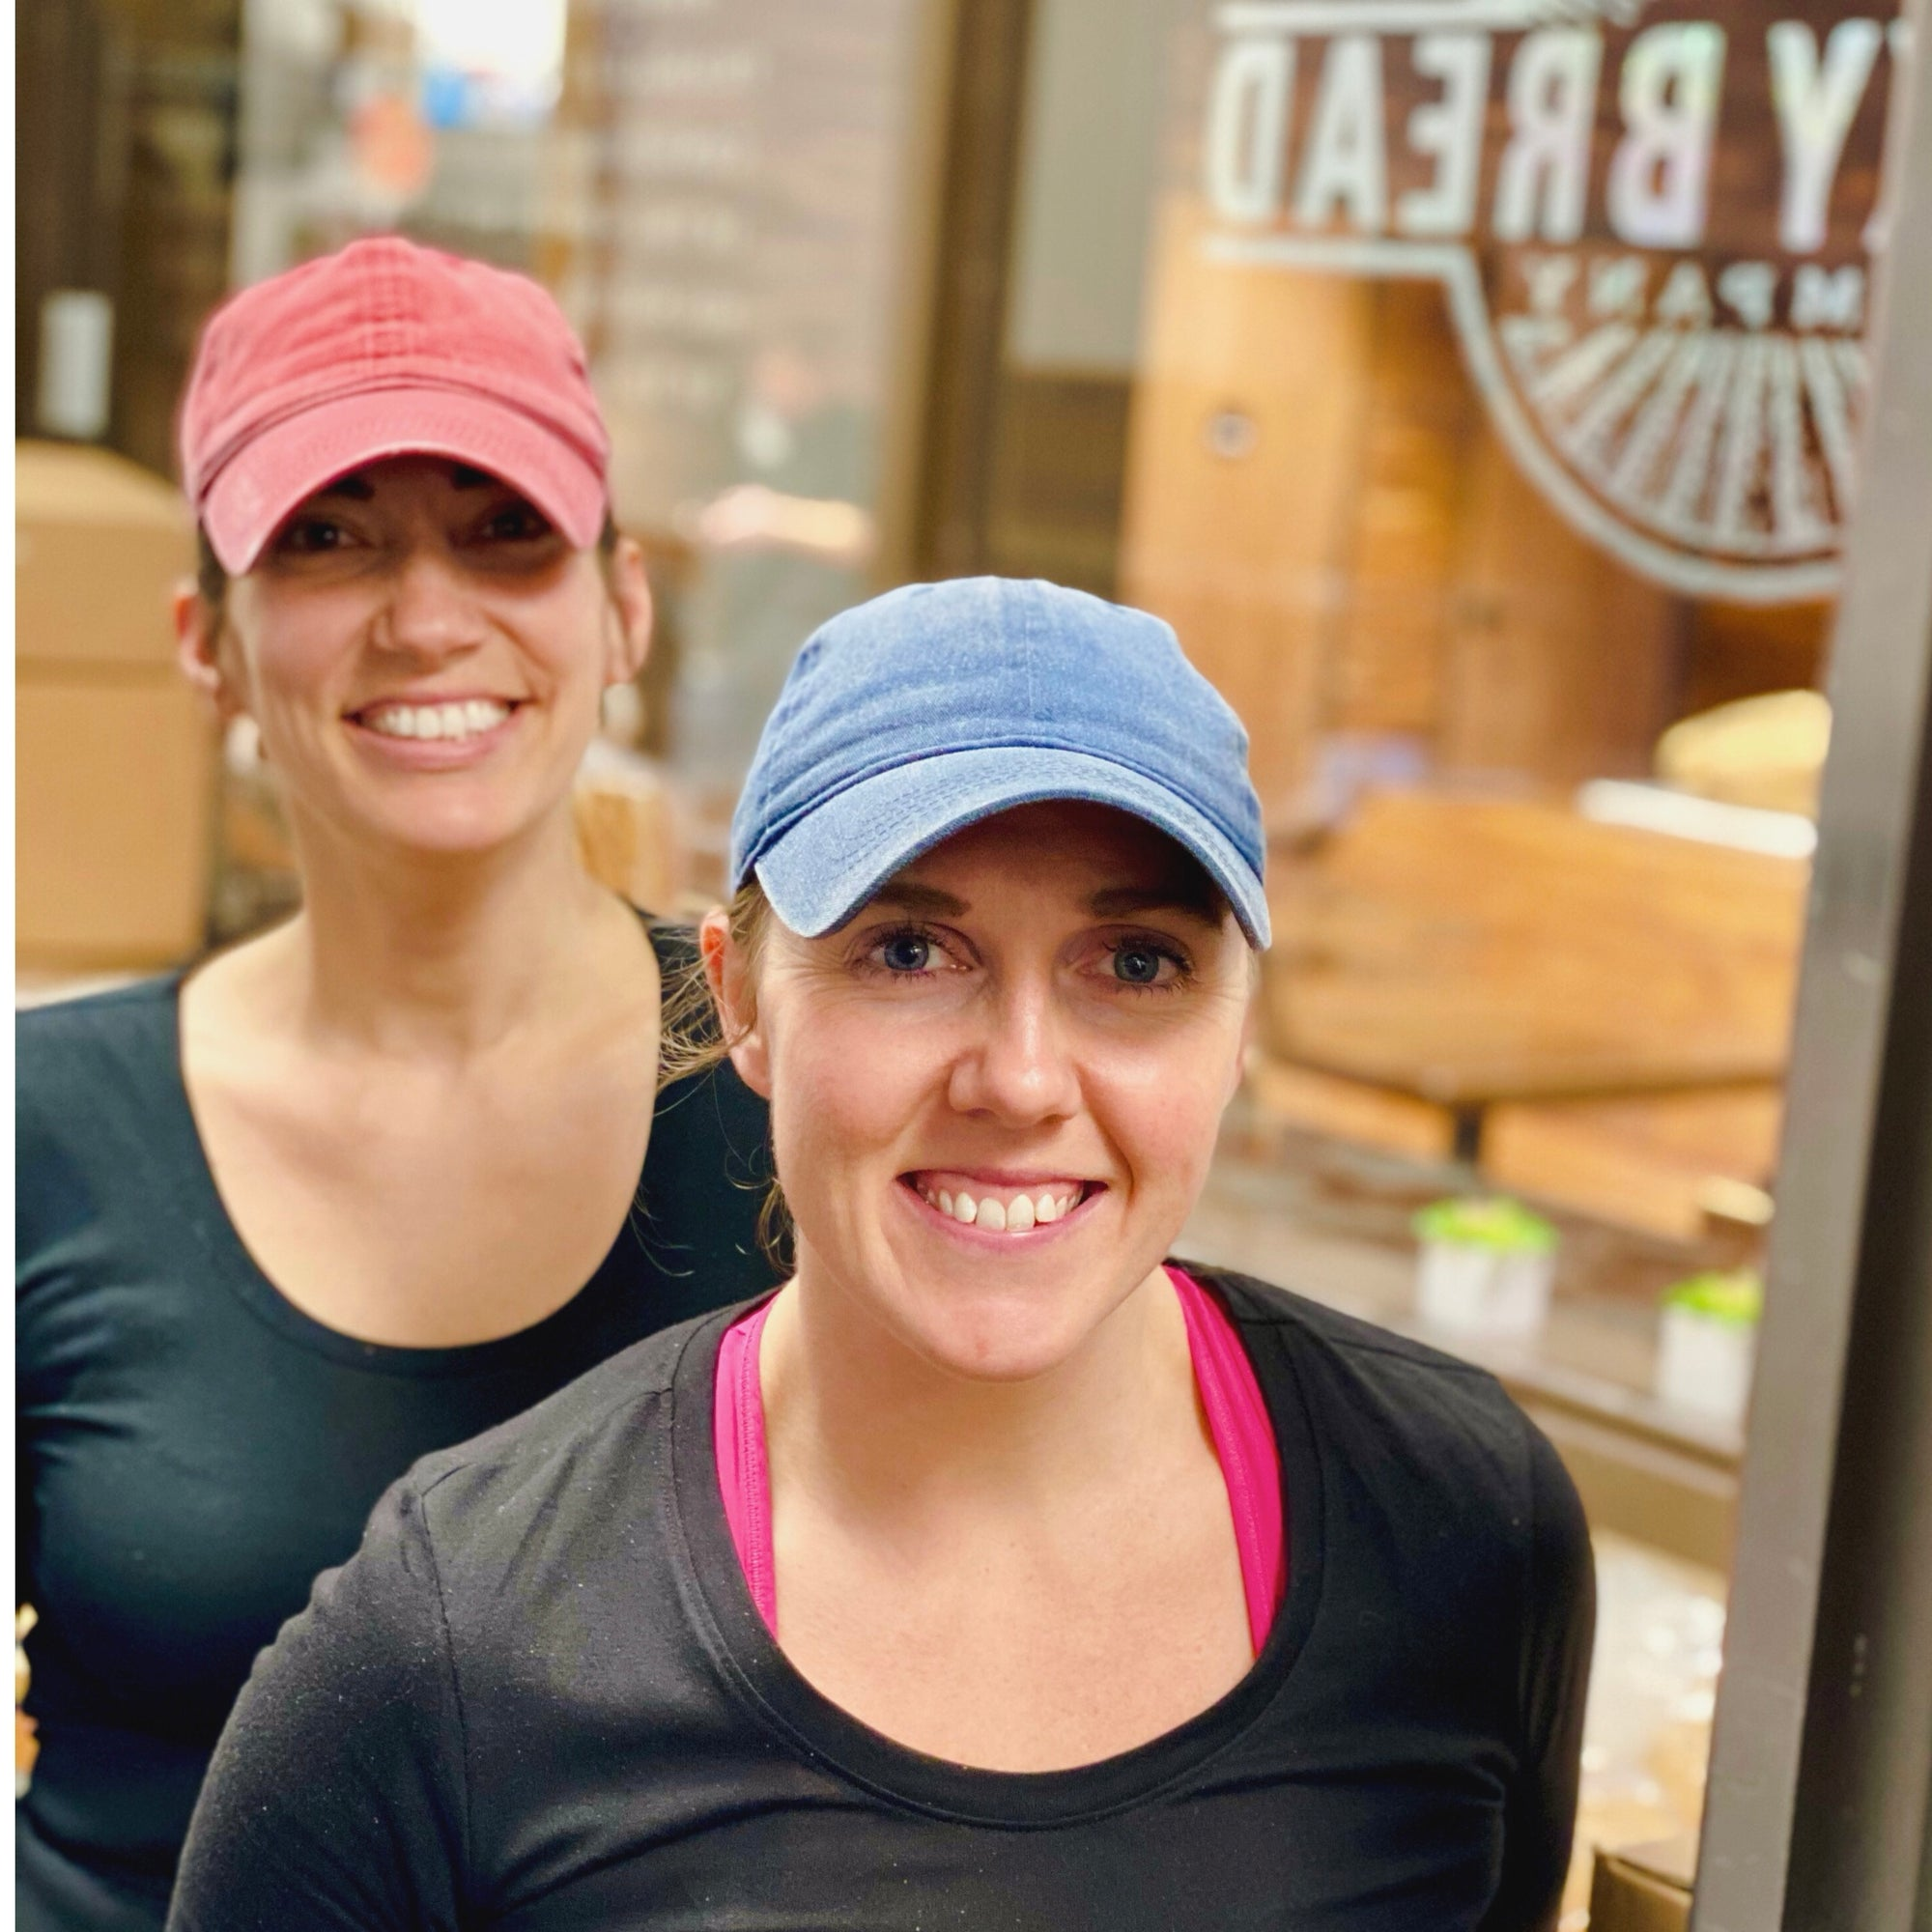 wish you and your family a happy and healthy new year! Our online store and Liberty Park bakery will resume regular business hours starting January 4, 2021. See you then!